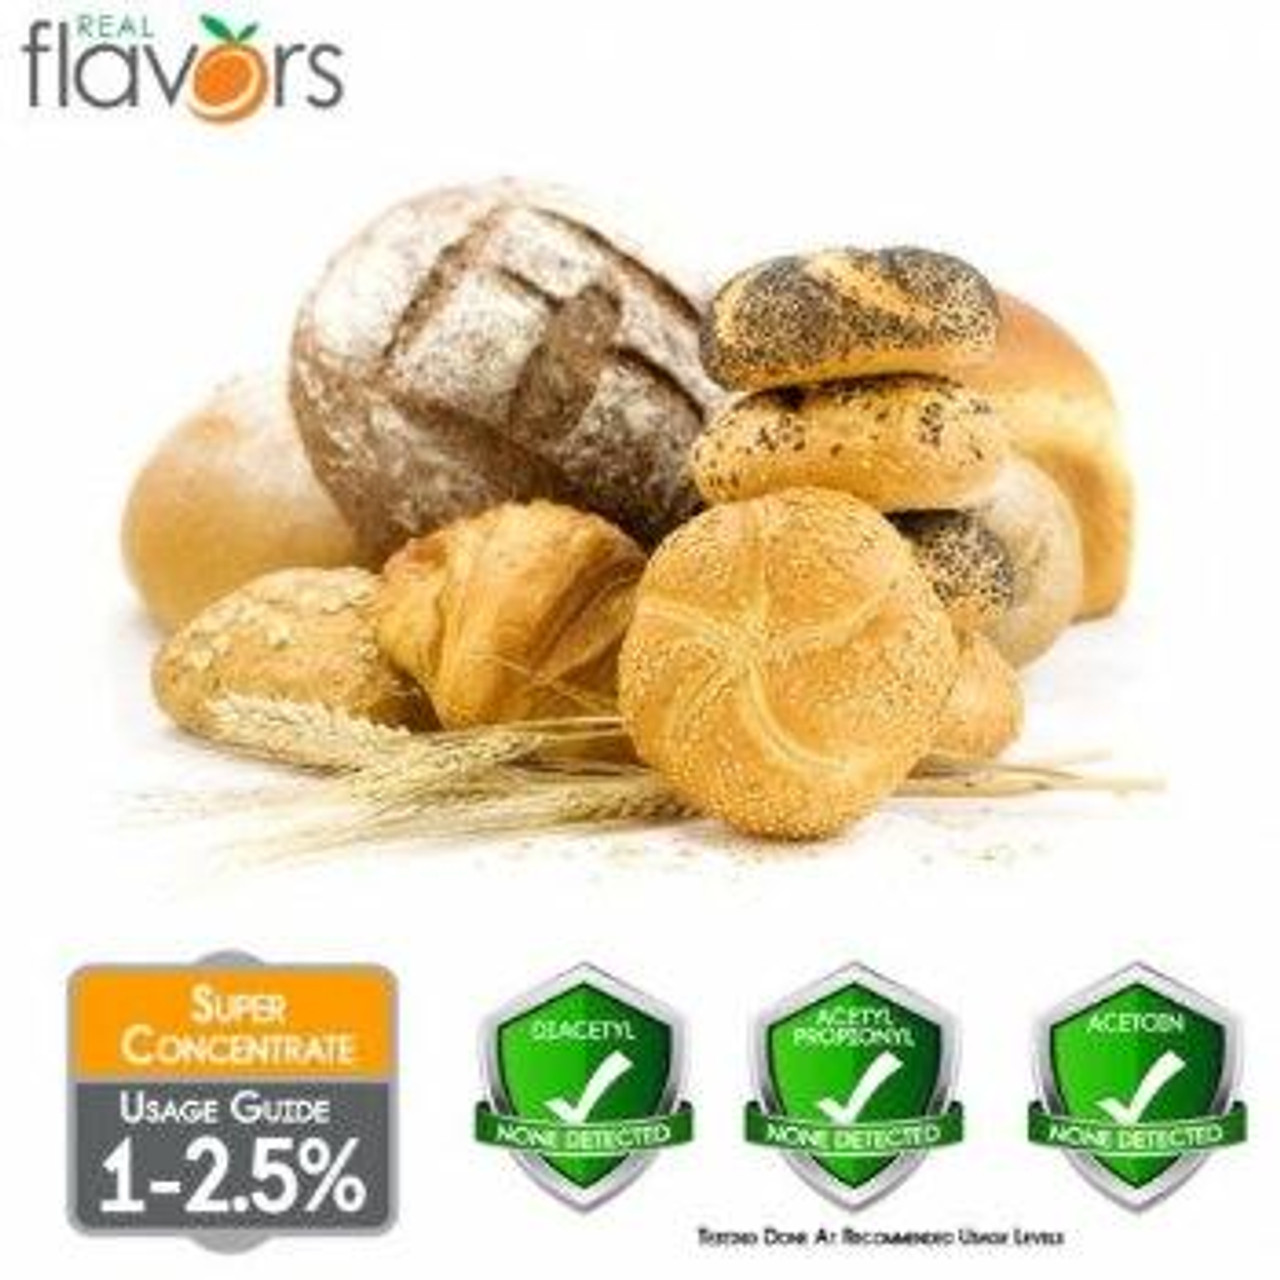 Real Flavors Flavours BAKED BREAD RF